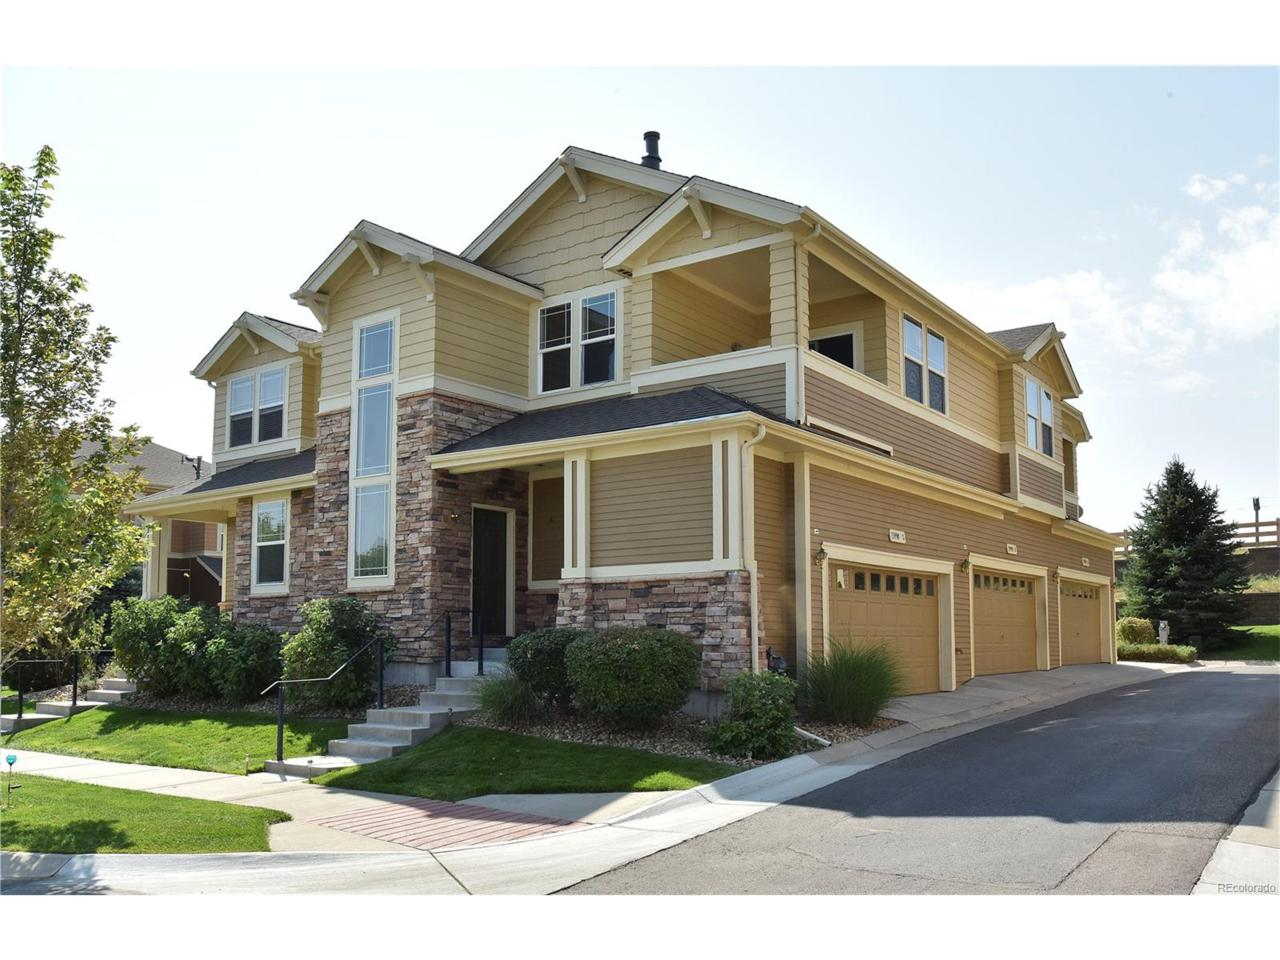 13990 W 83rd Place C, Arvada, CO 80005 (MLS #2650747) :: 8z Real Estate